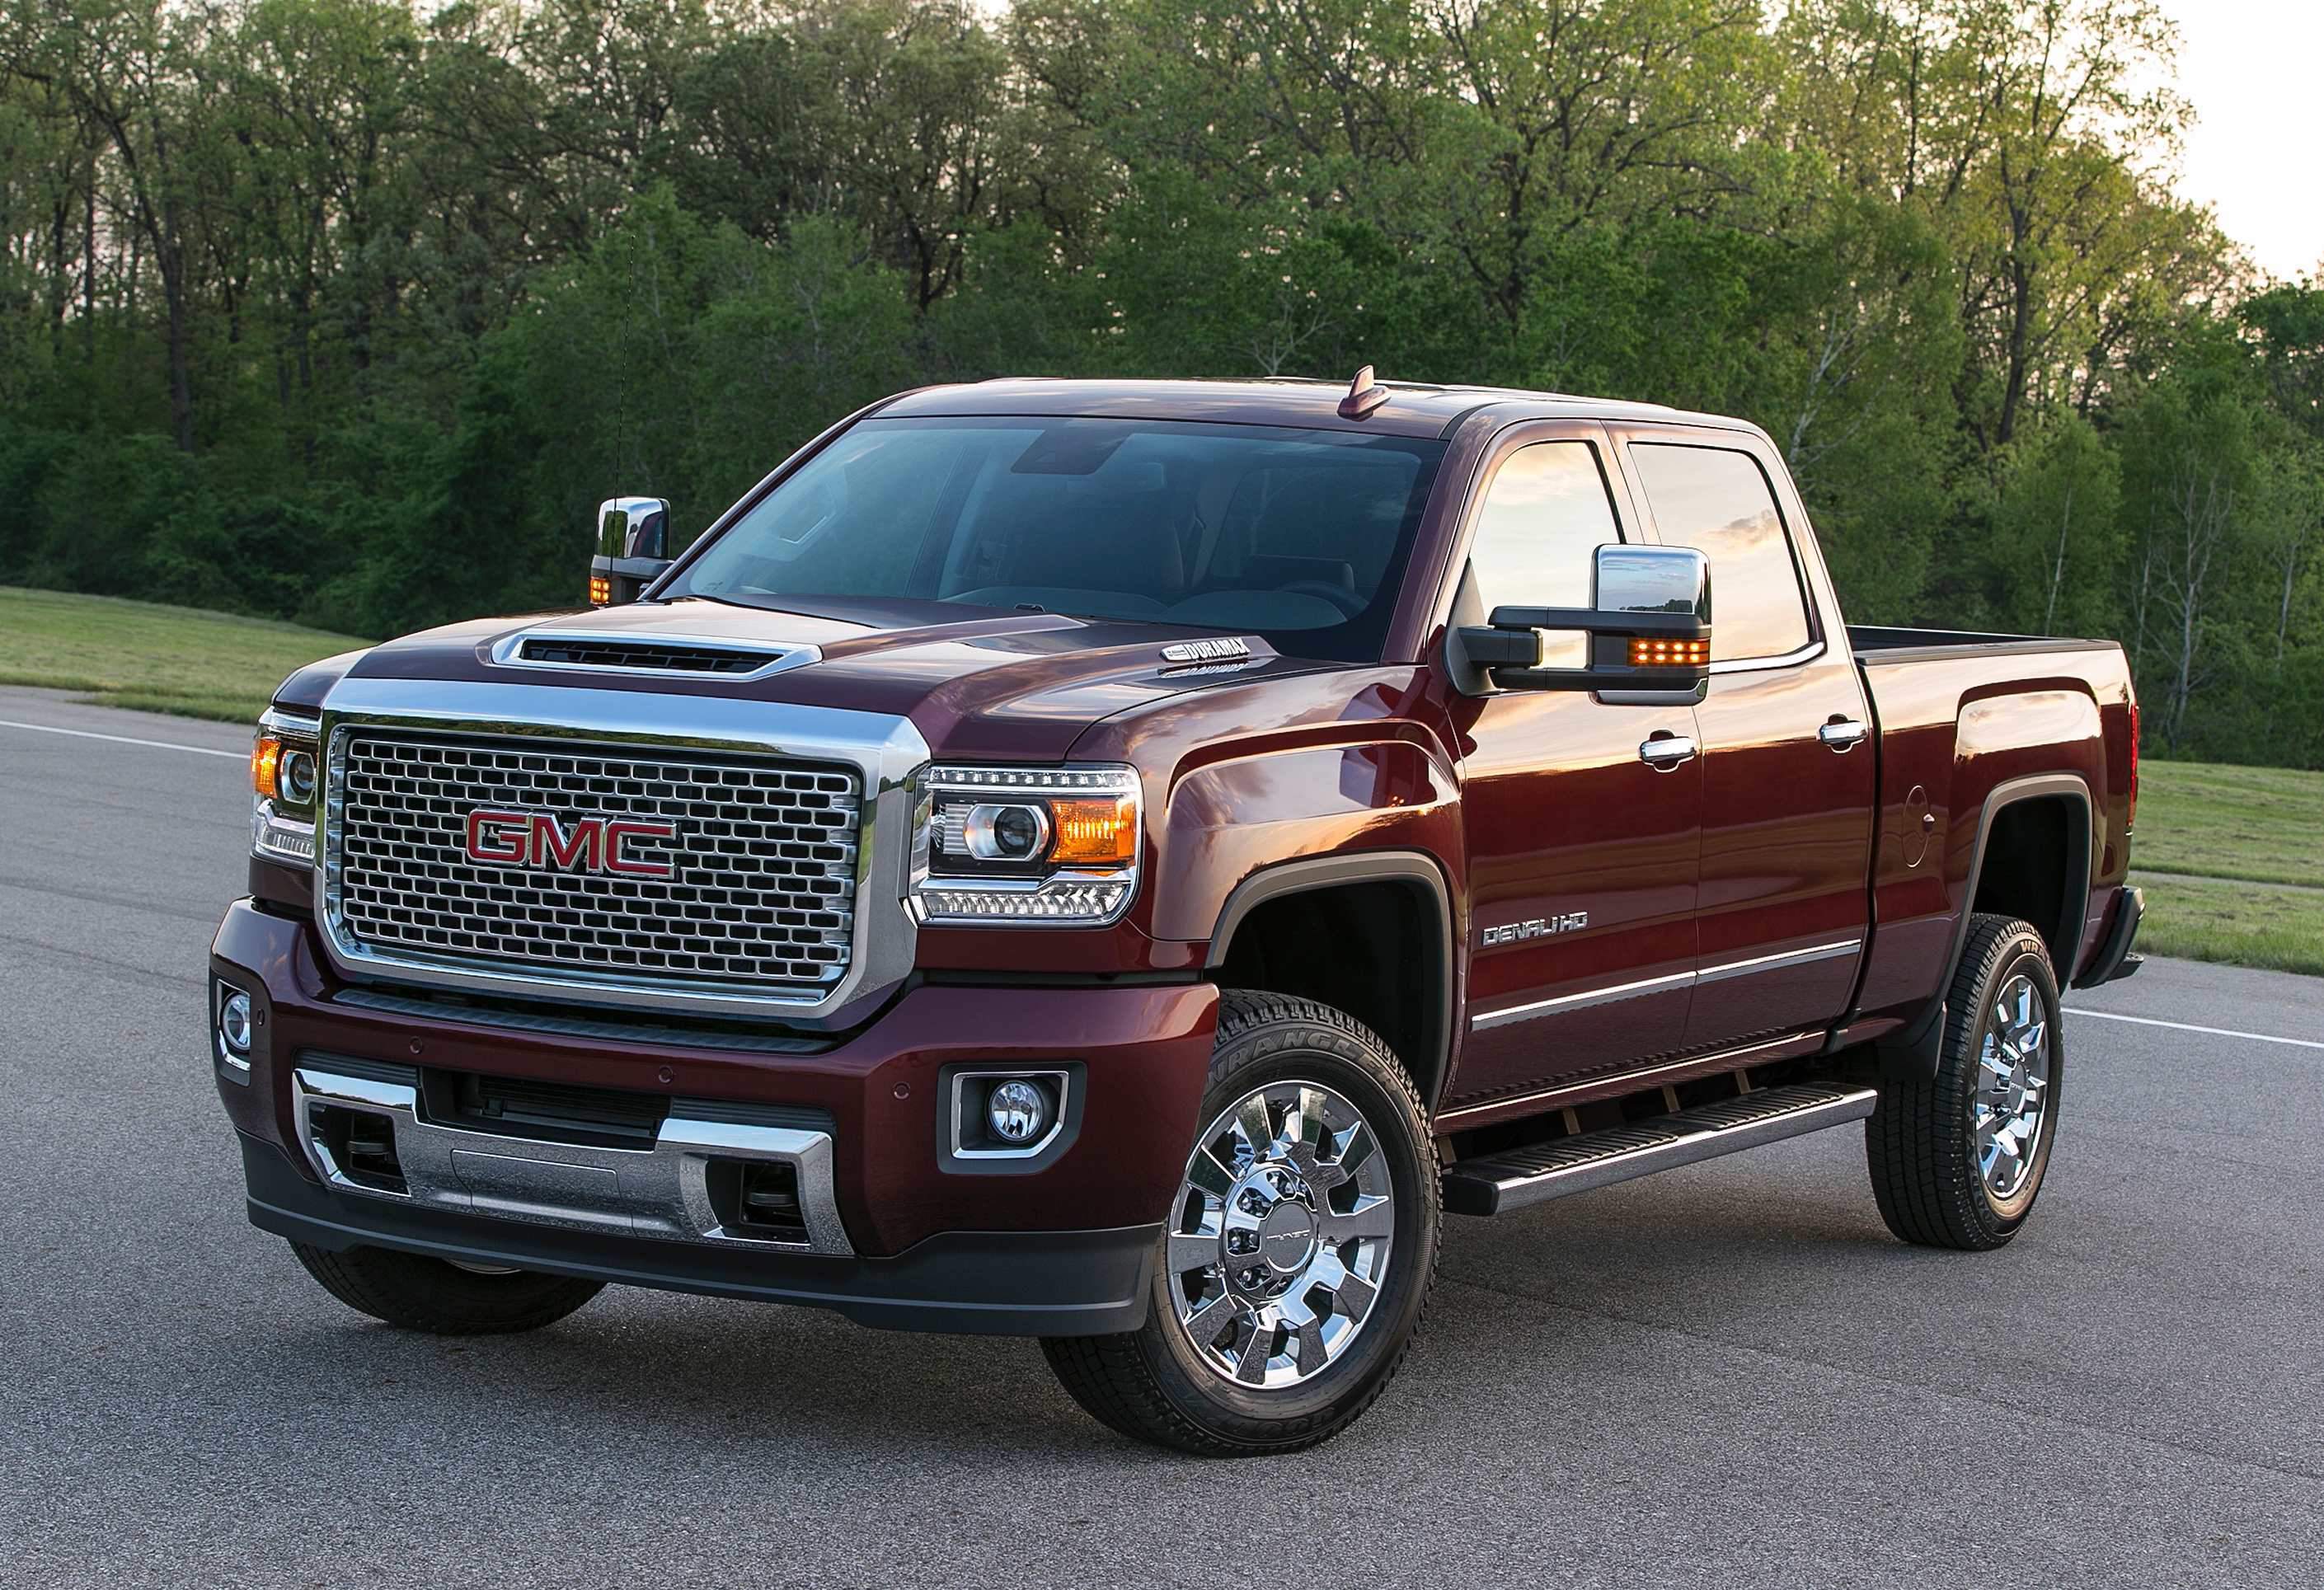 articles unveil pickup of wsj generation or s redesigned truck fiber gmc gm latest its in versions full bn will wars trucks weapon gms size next carbon